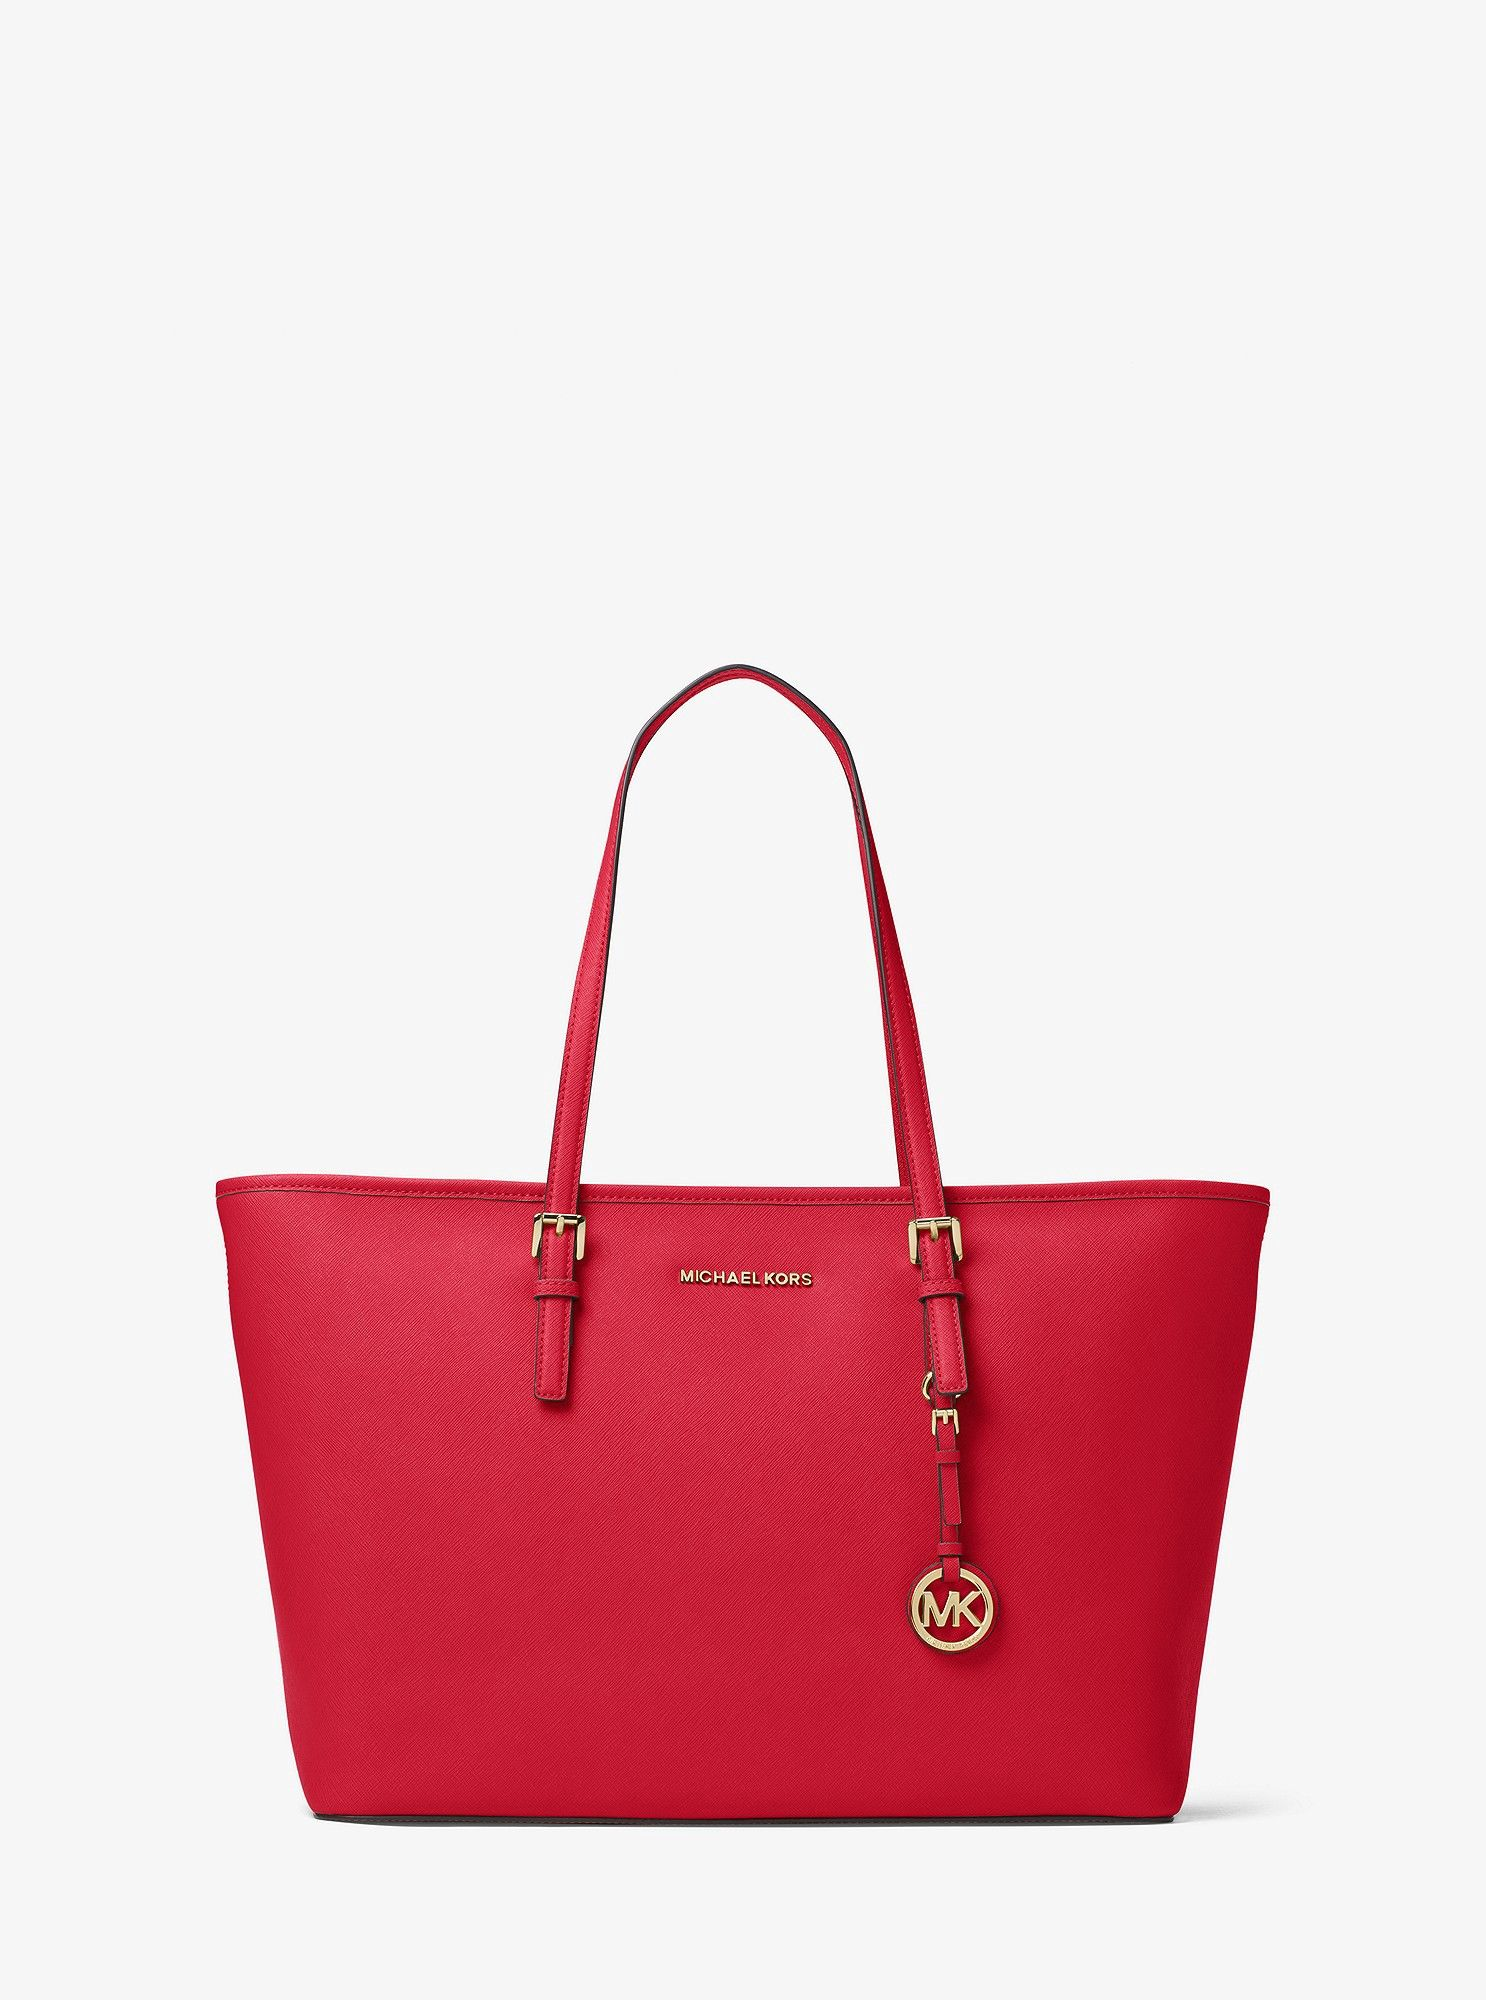 a33670b2c00e43 Michael Kors Jet Set Travel Medium Saffiano Leather Top-Zip Tote - Bright  Red